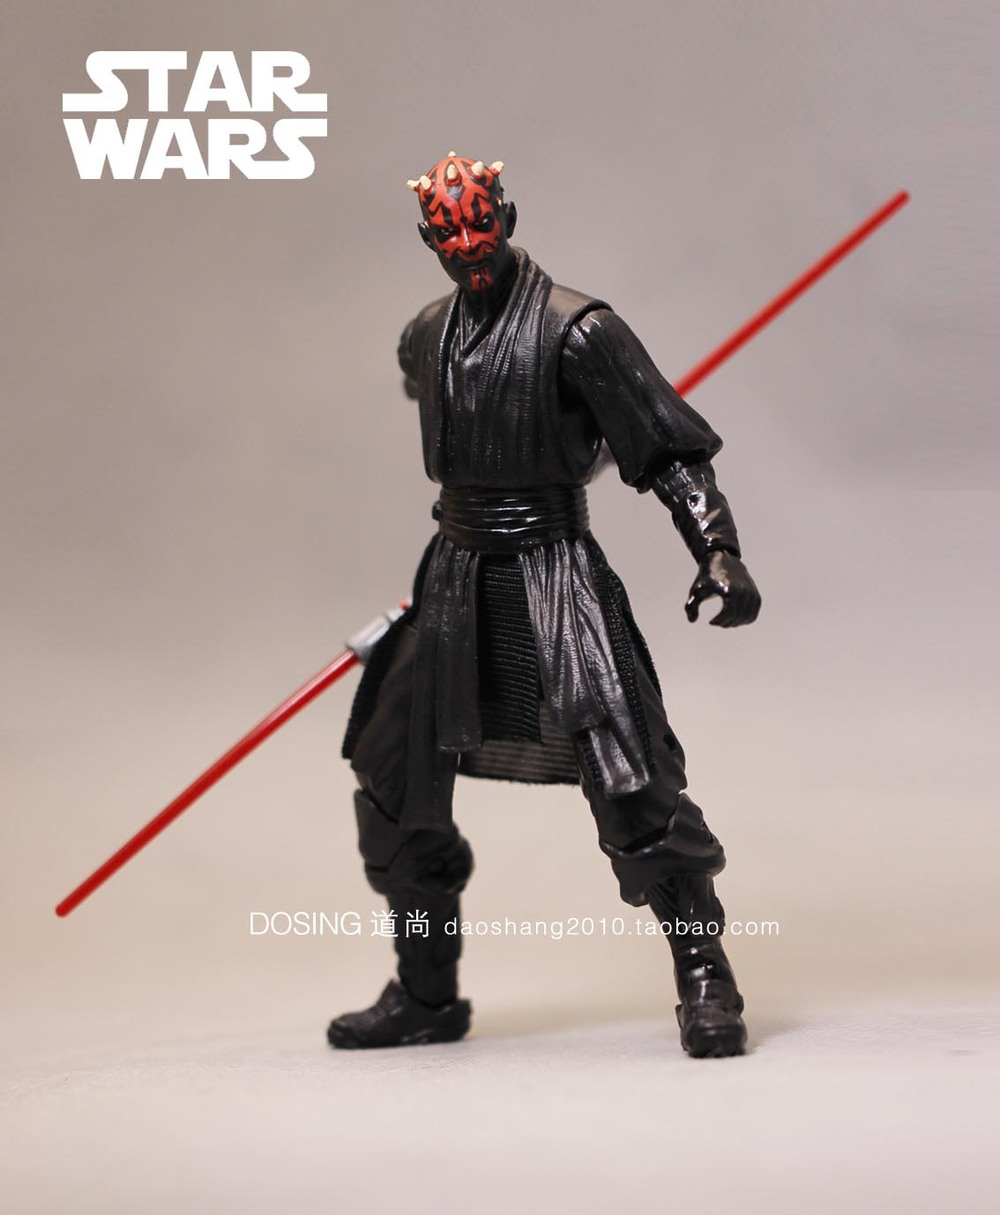 star wars action figure darth maul model toy star wars darth maul pvc action figure star wars. Black Bedroom Furniture Sets. Home Design Ideas